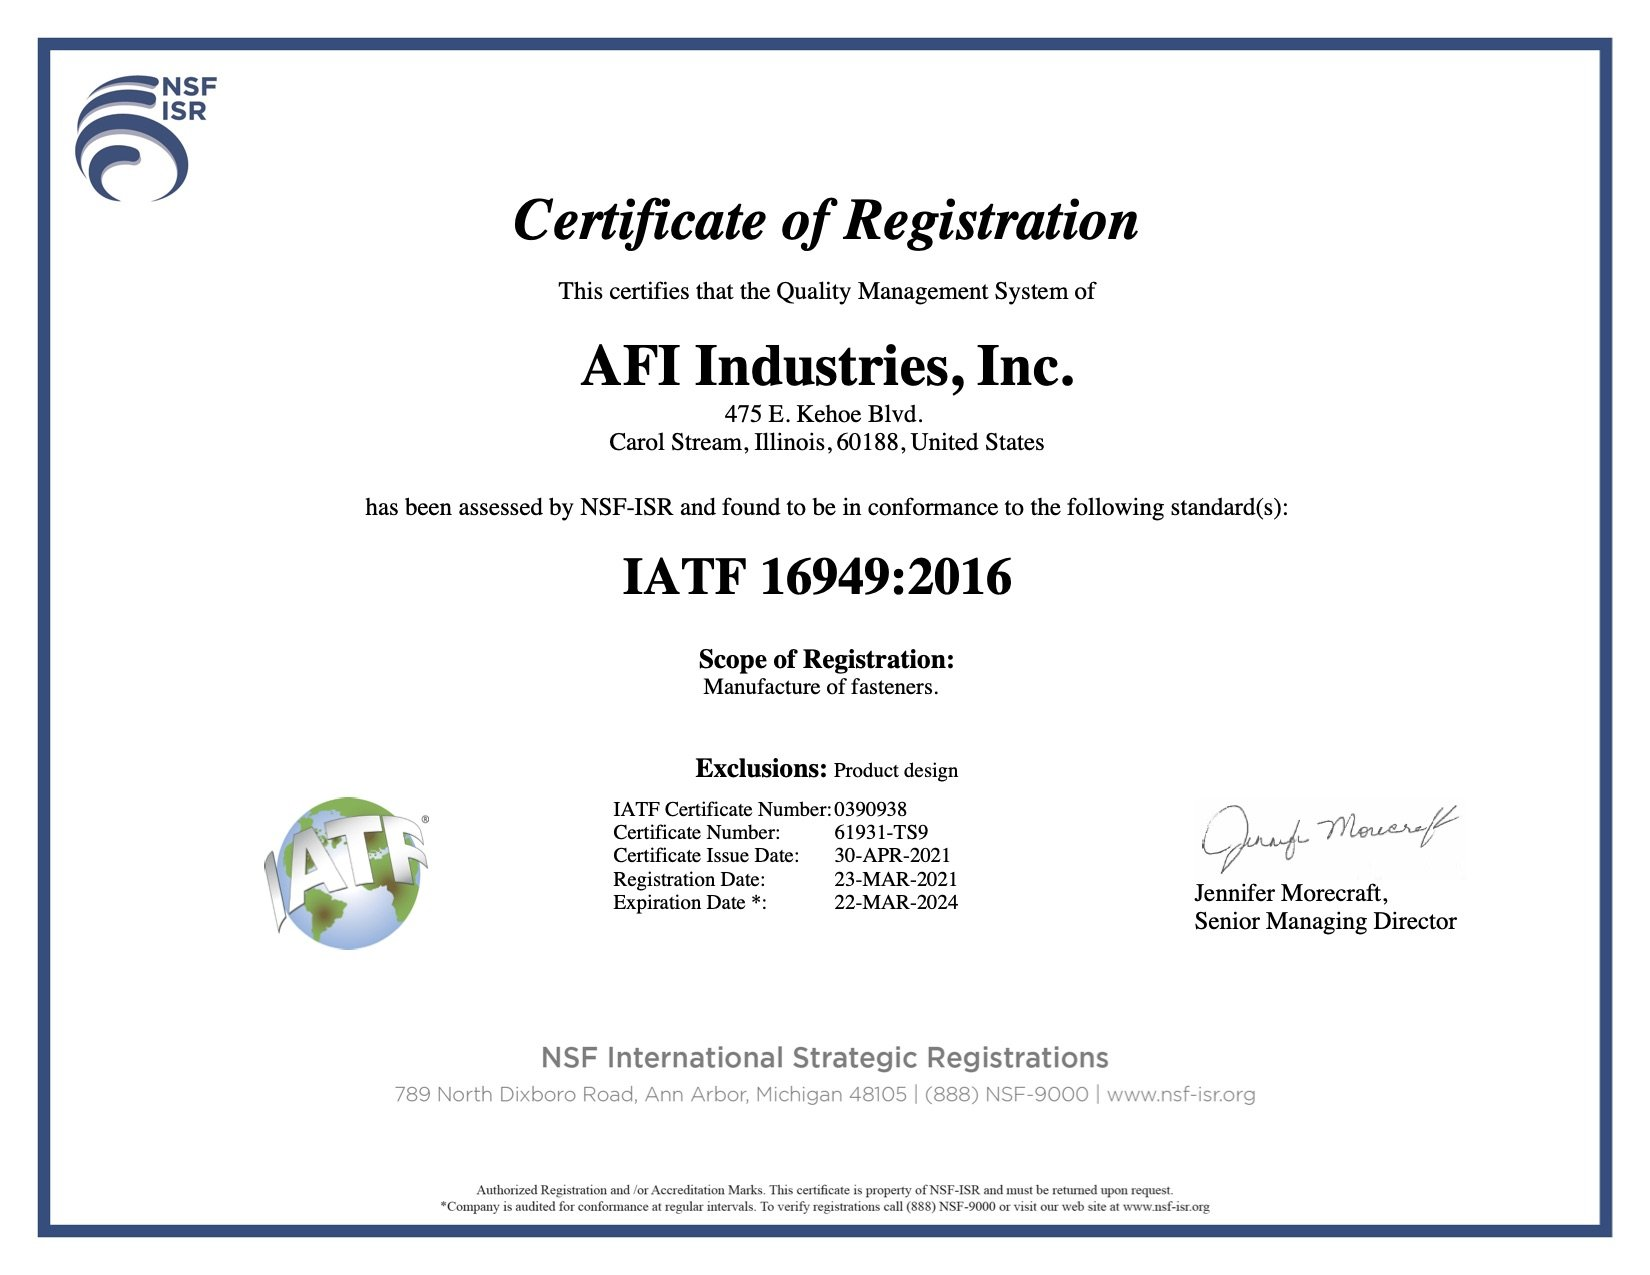 IATF 16949 2016 certificate for AFI Industries